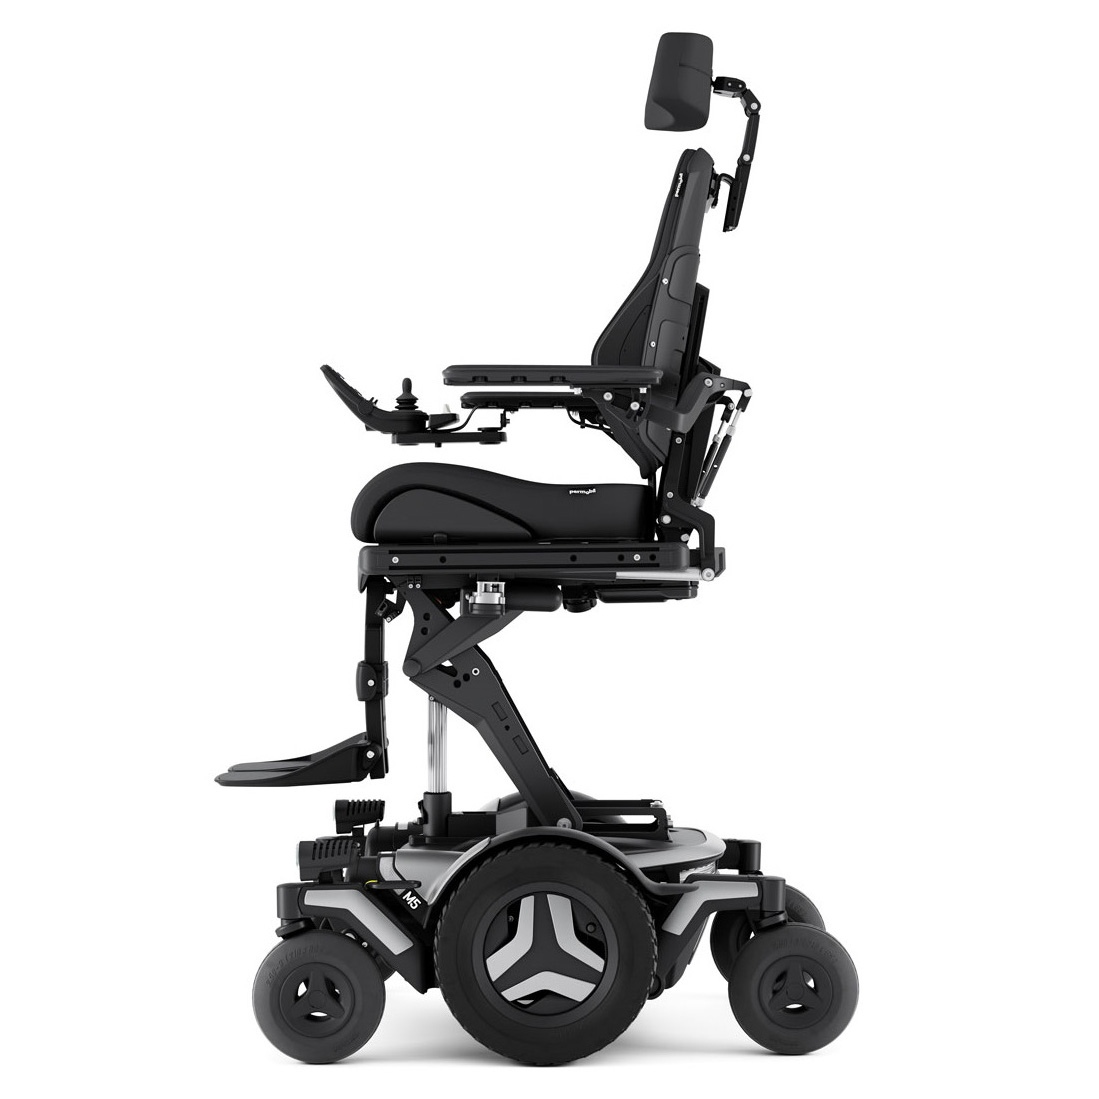 Permobil Corpus M5 active hight